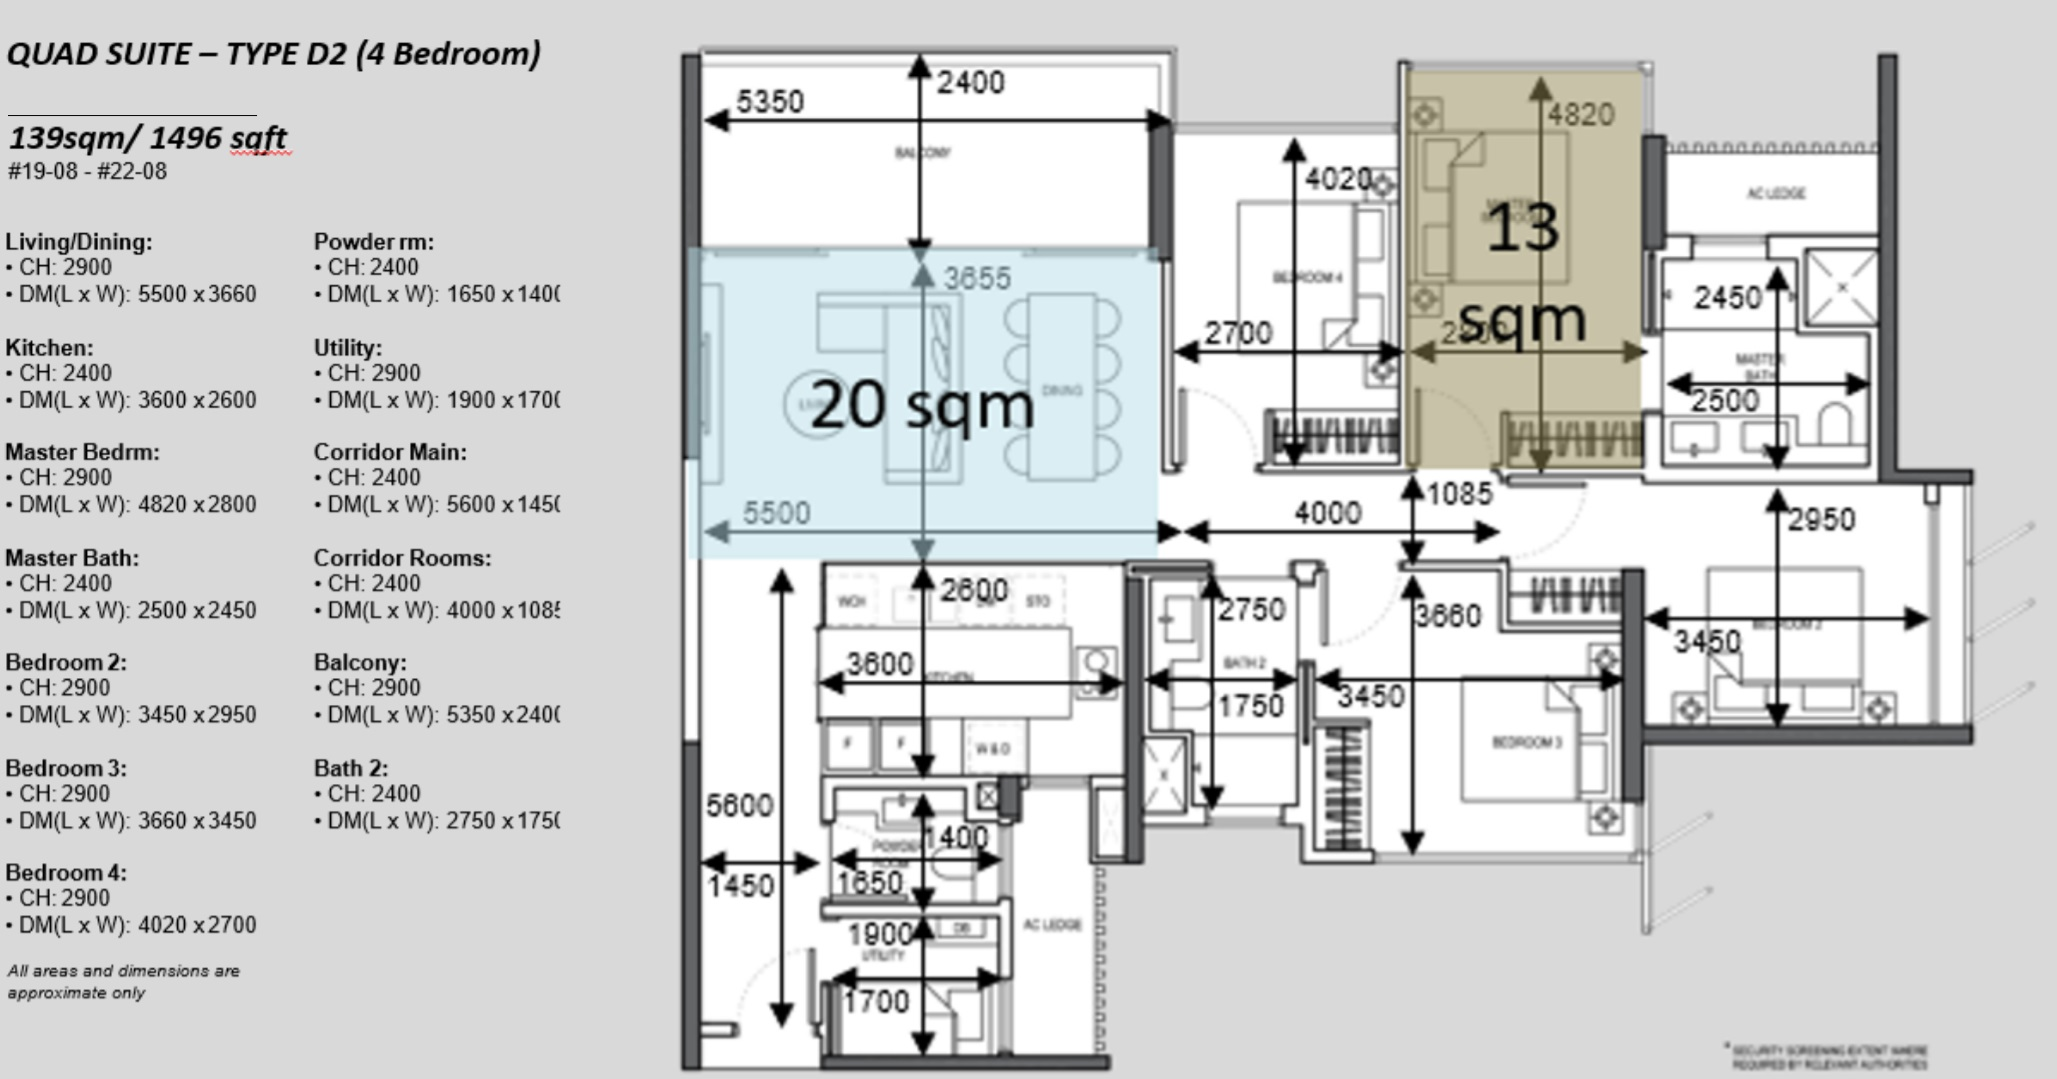 The Atelier condo floorplan 4 bedroom Type D2